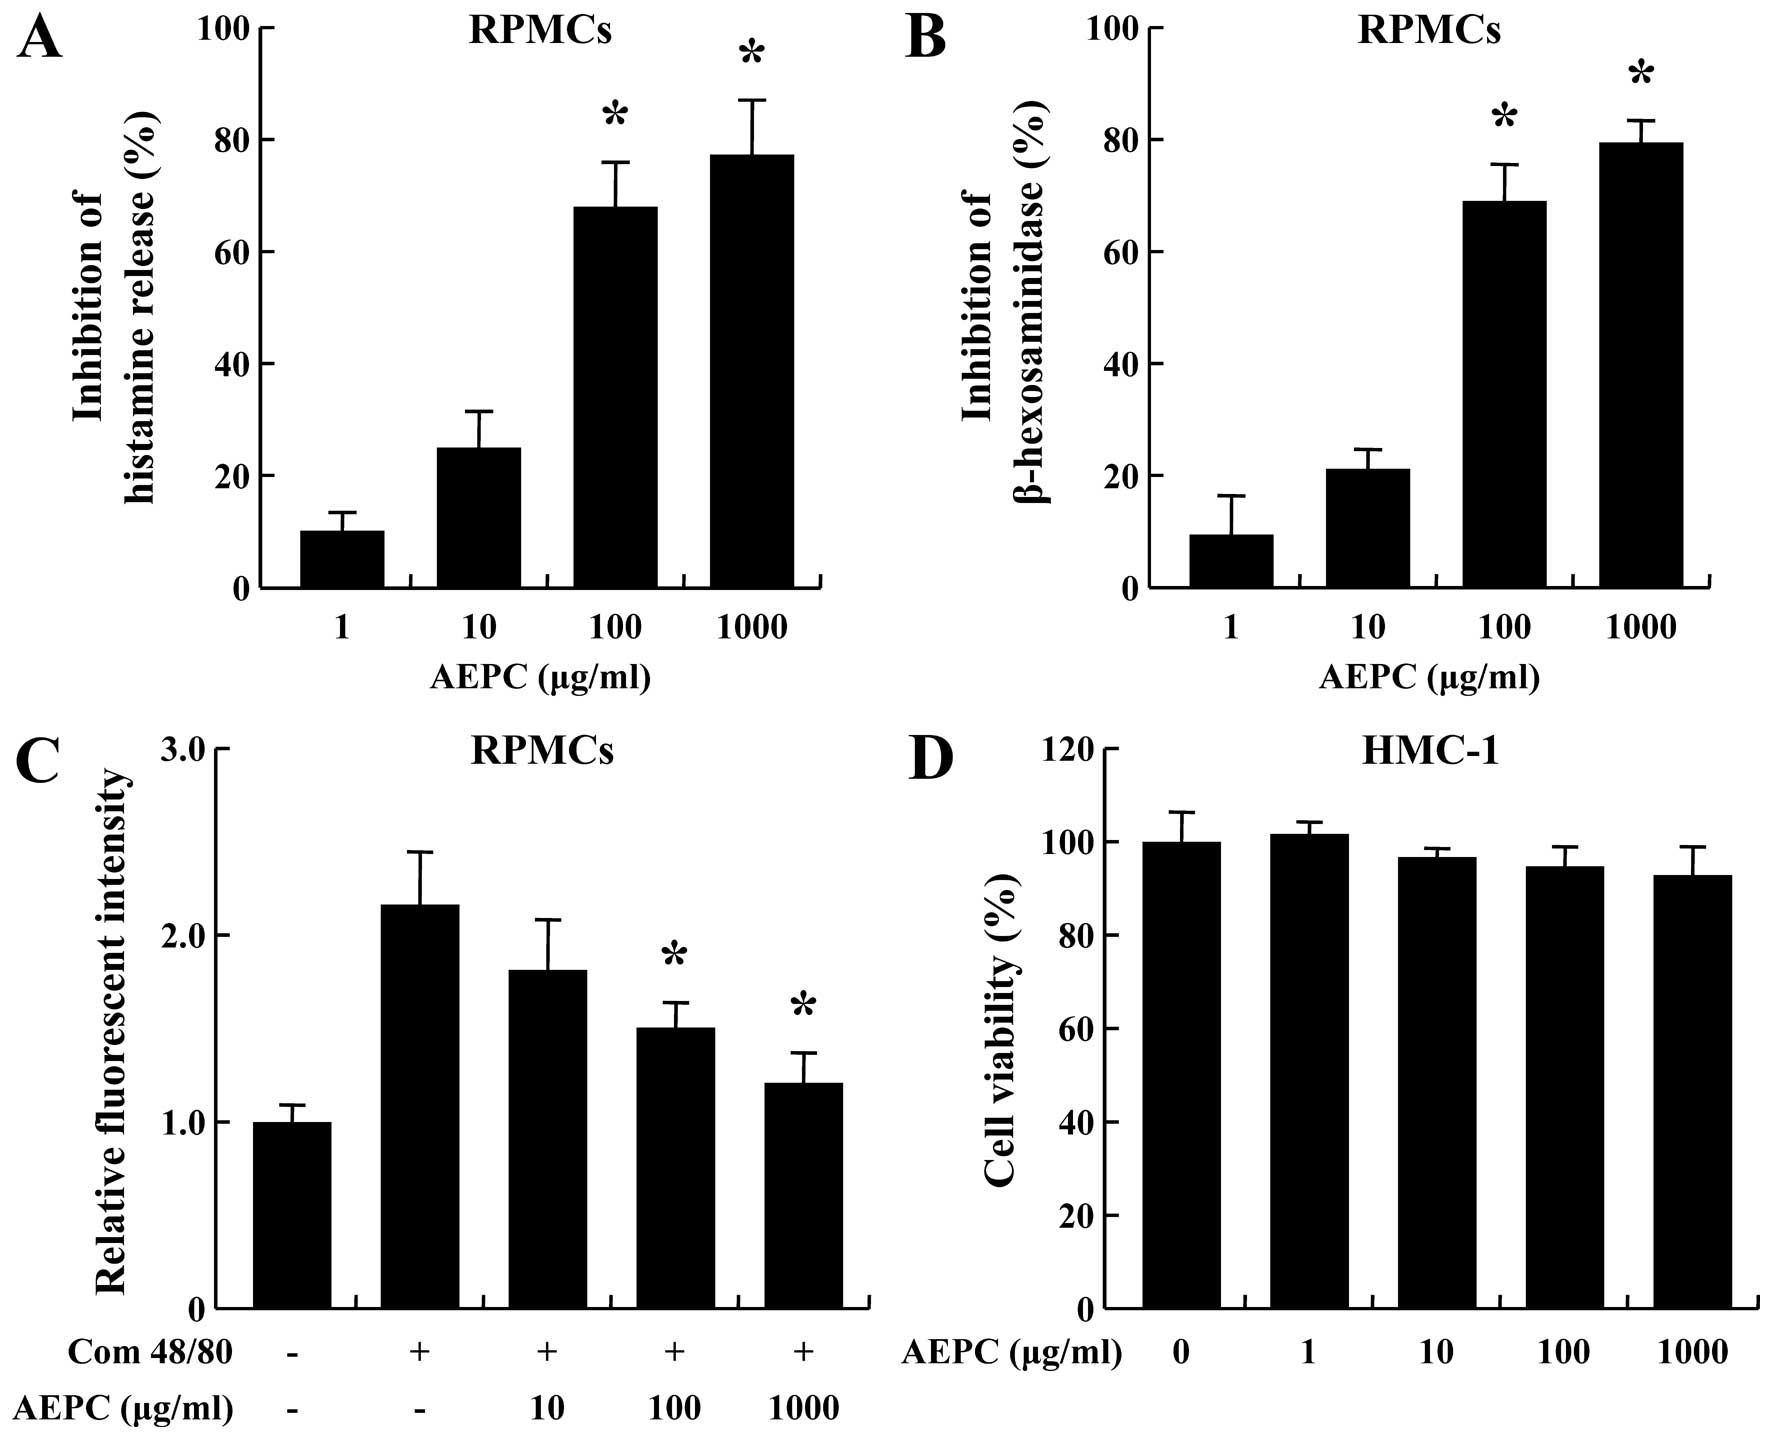 Anti-allergic and anti-inflammatory effects of aqueous extract of